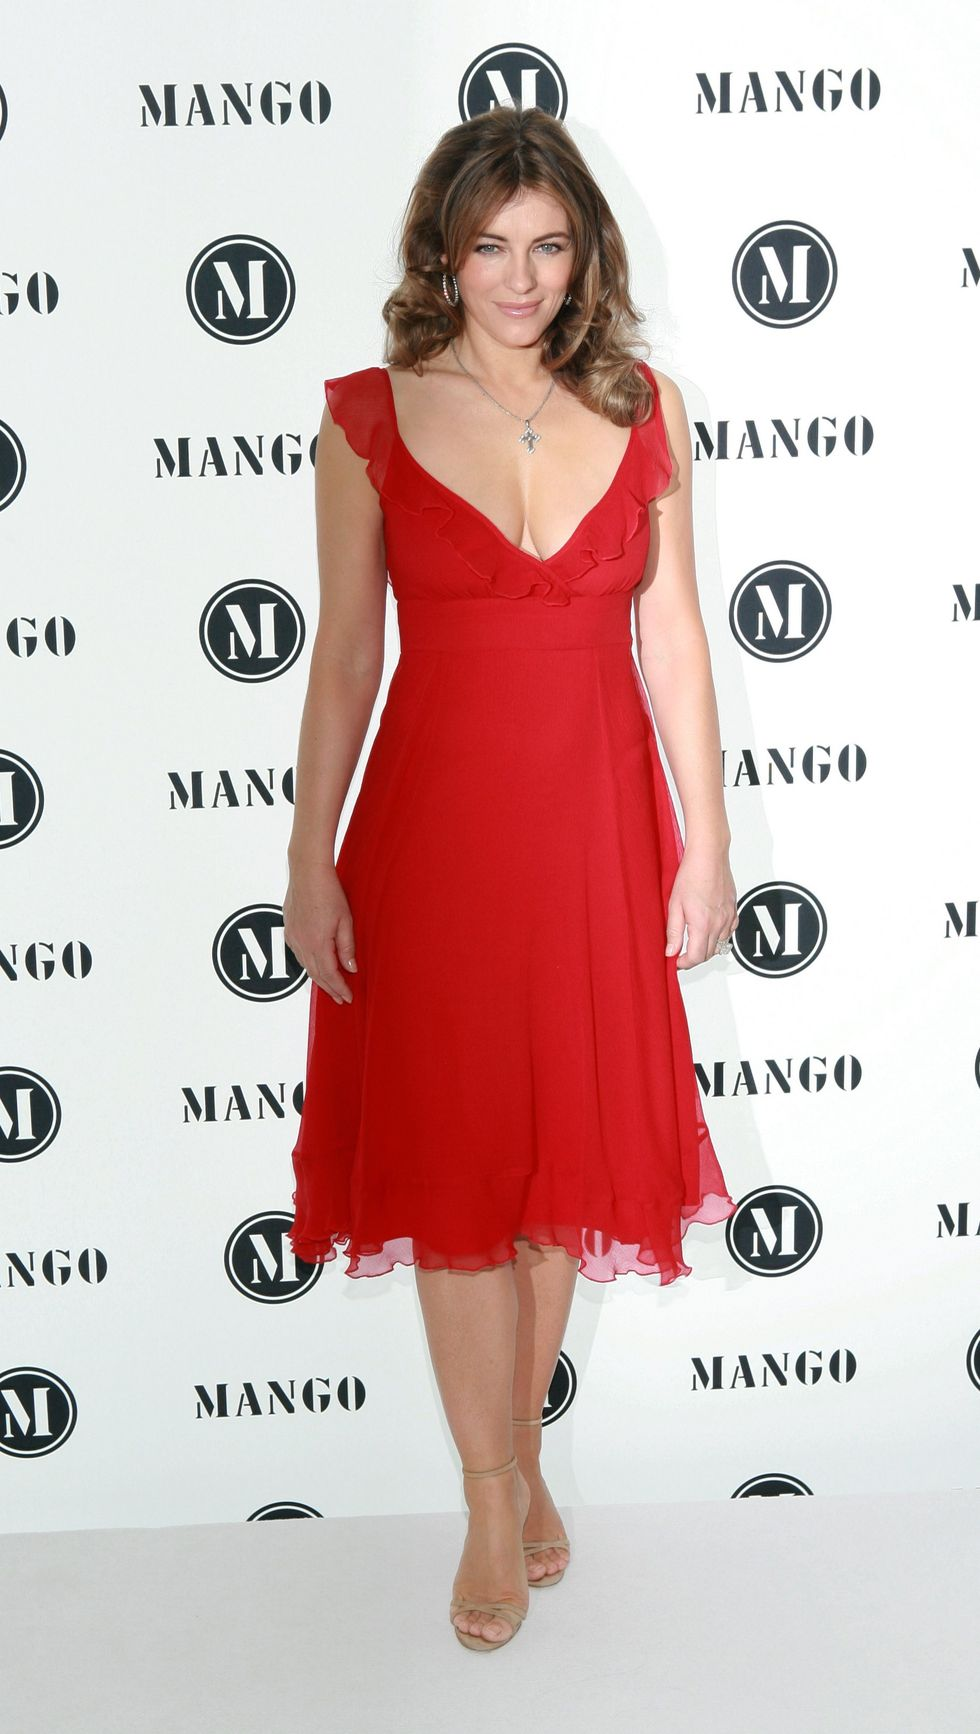 elizabeth-hurley-launches-elizabeth-hurley-for-mng-collection-in-munich-01